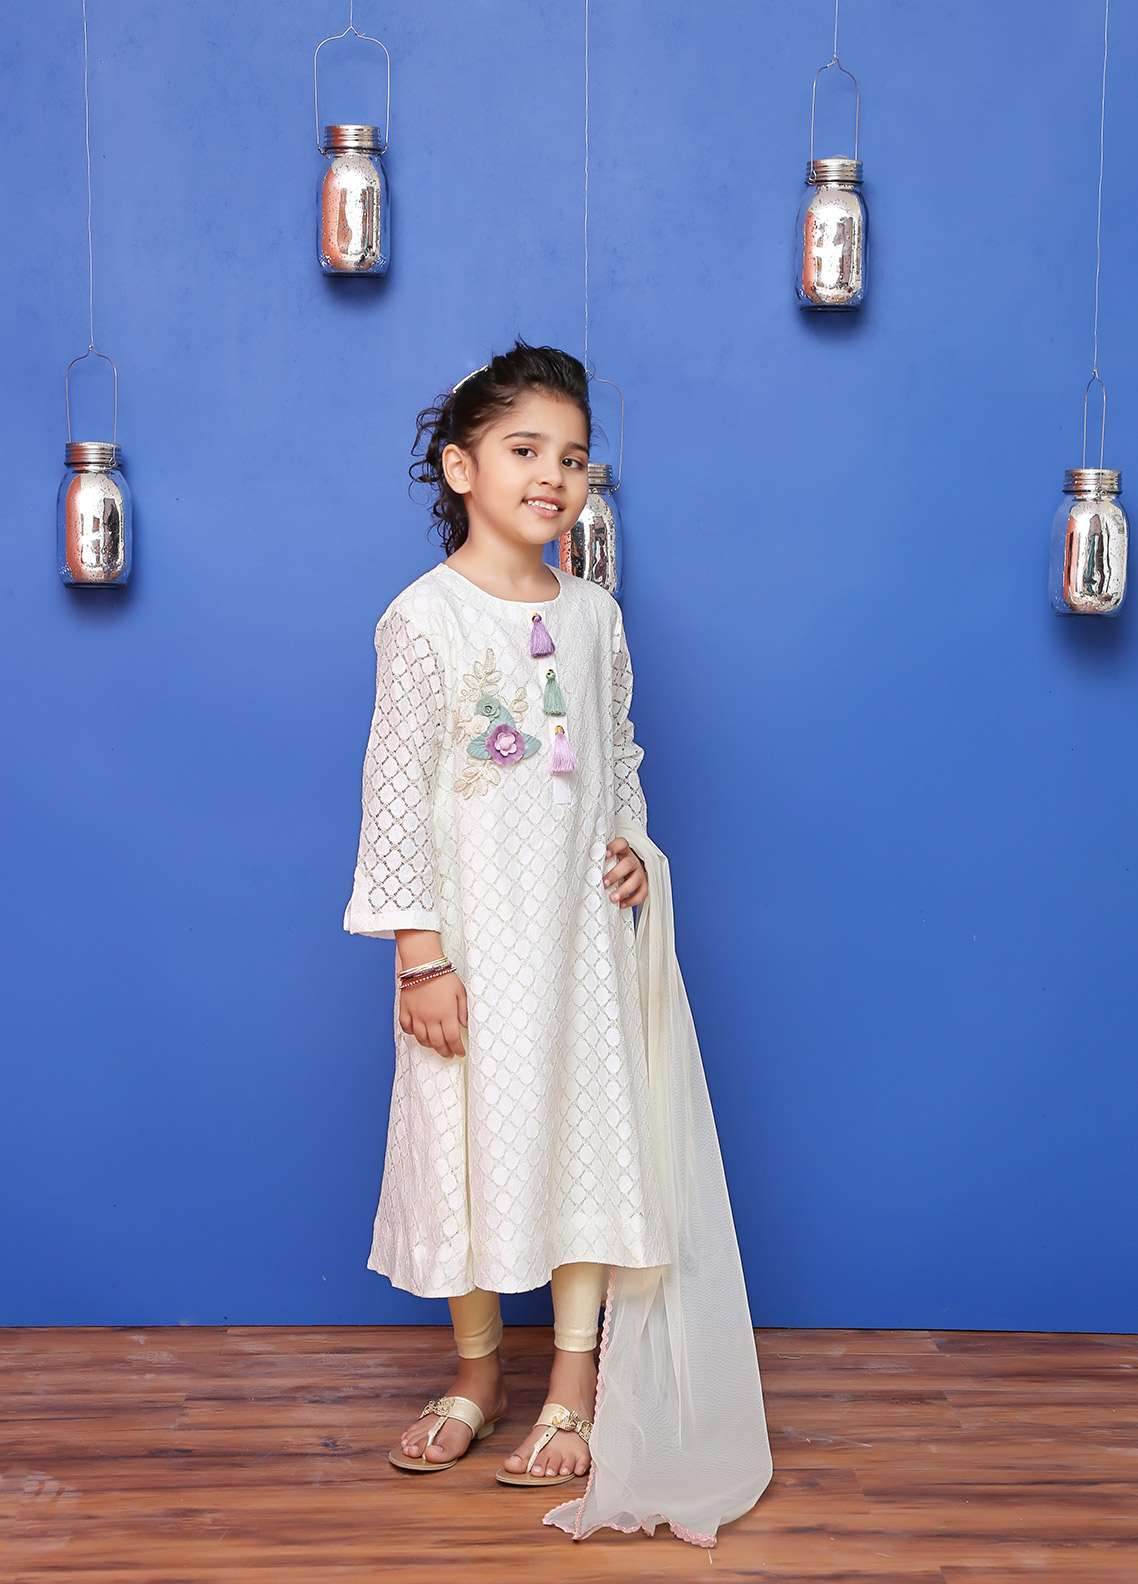 Ochre Cotton Net Formal Girls 2 Piece Suit - OFW 168 Off White